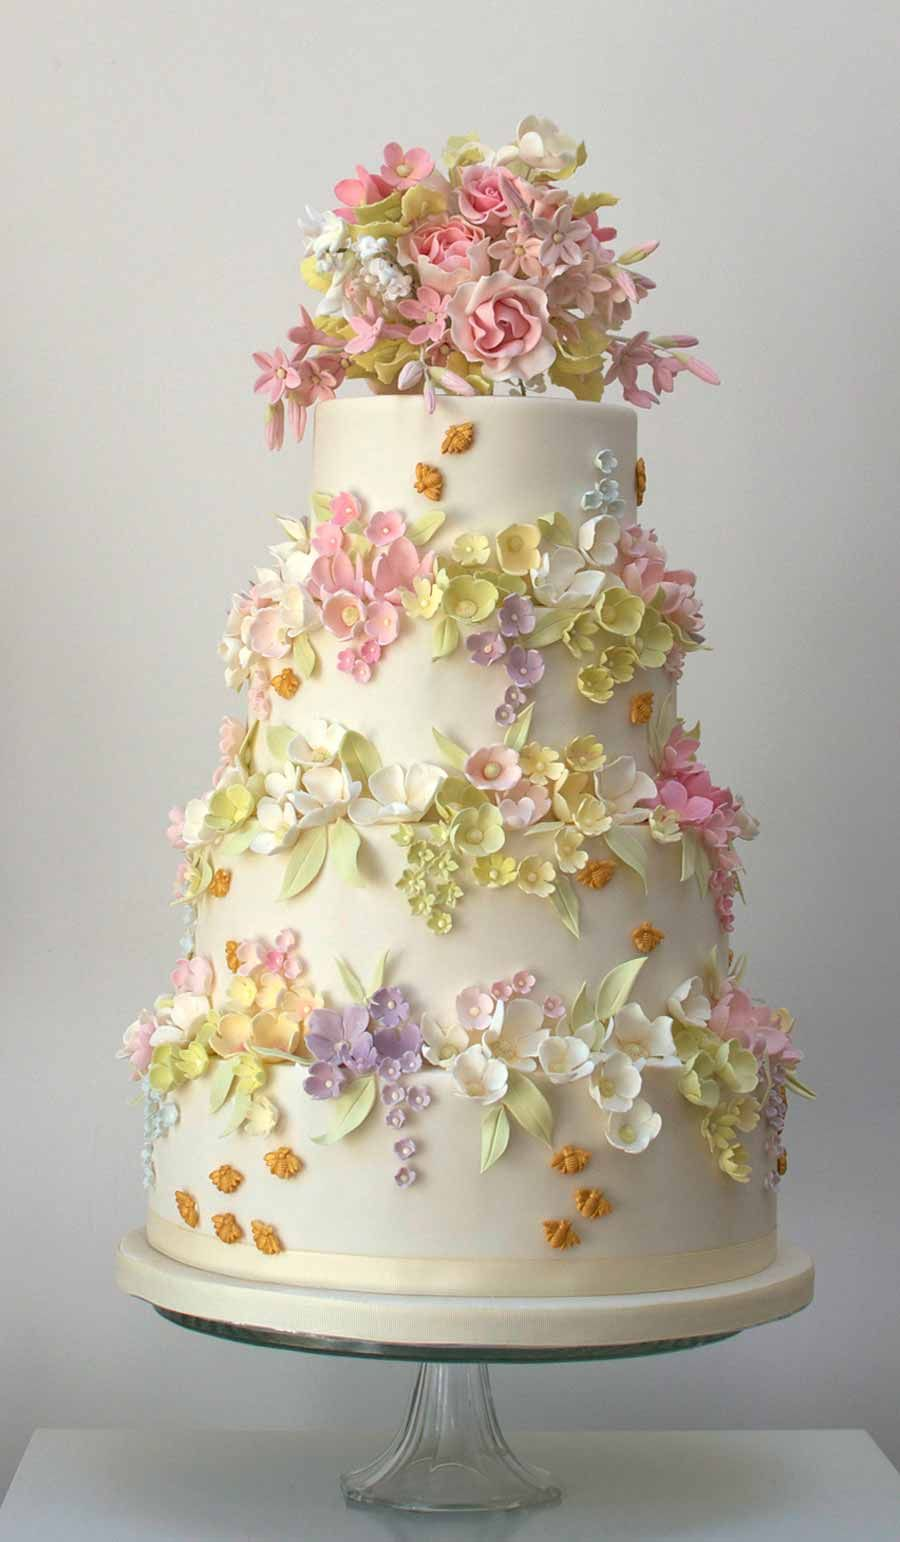 most beautiful birthday cakes in the world - Google Search ...